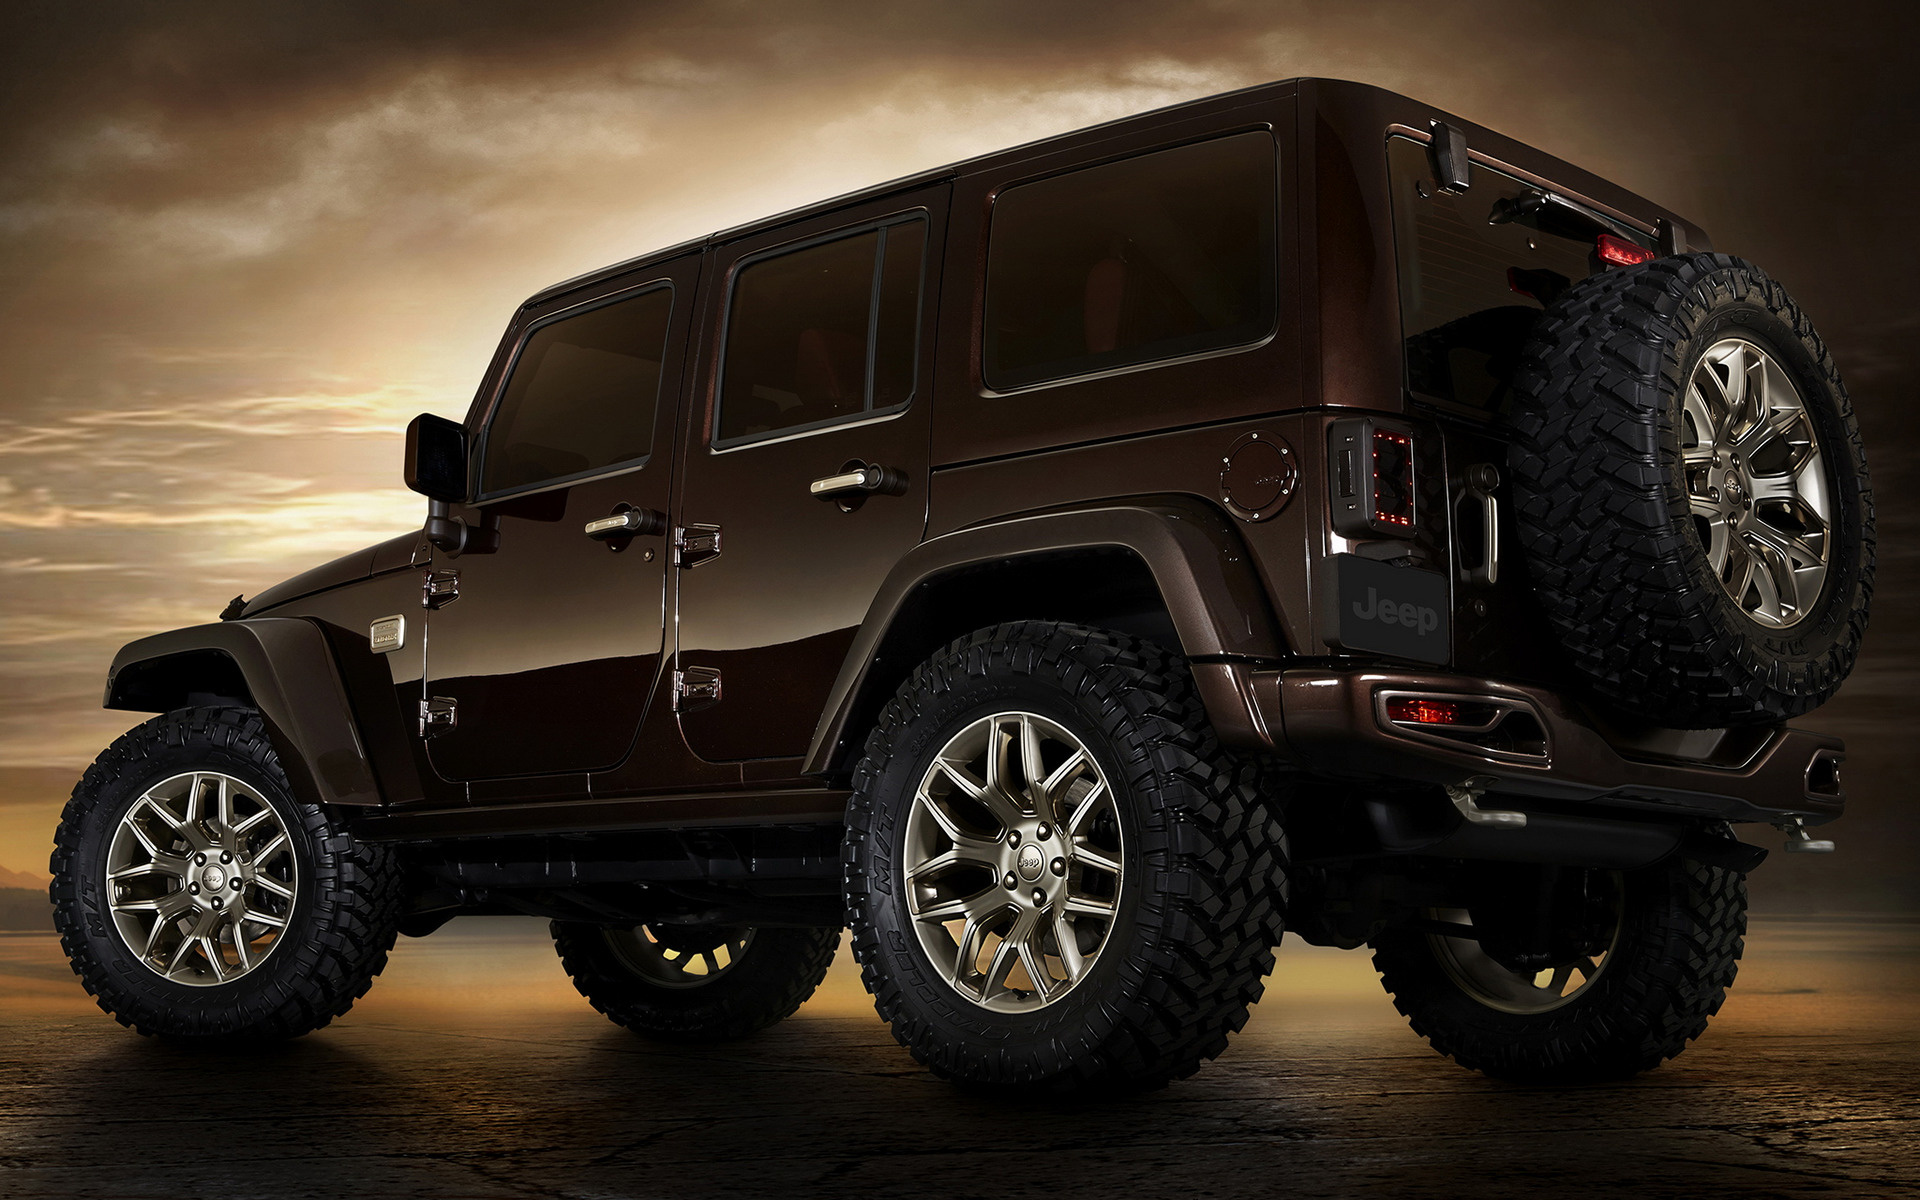 Bentley Car Wallpaper For Desktop Jeep Wrangler Sundancer Concept 2014 Wallpapers And Hd